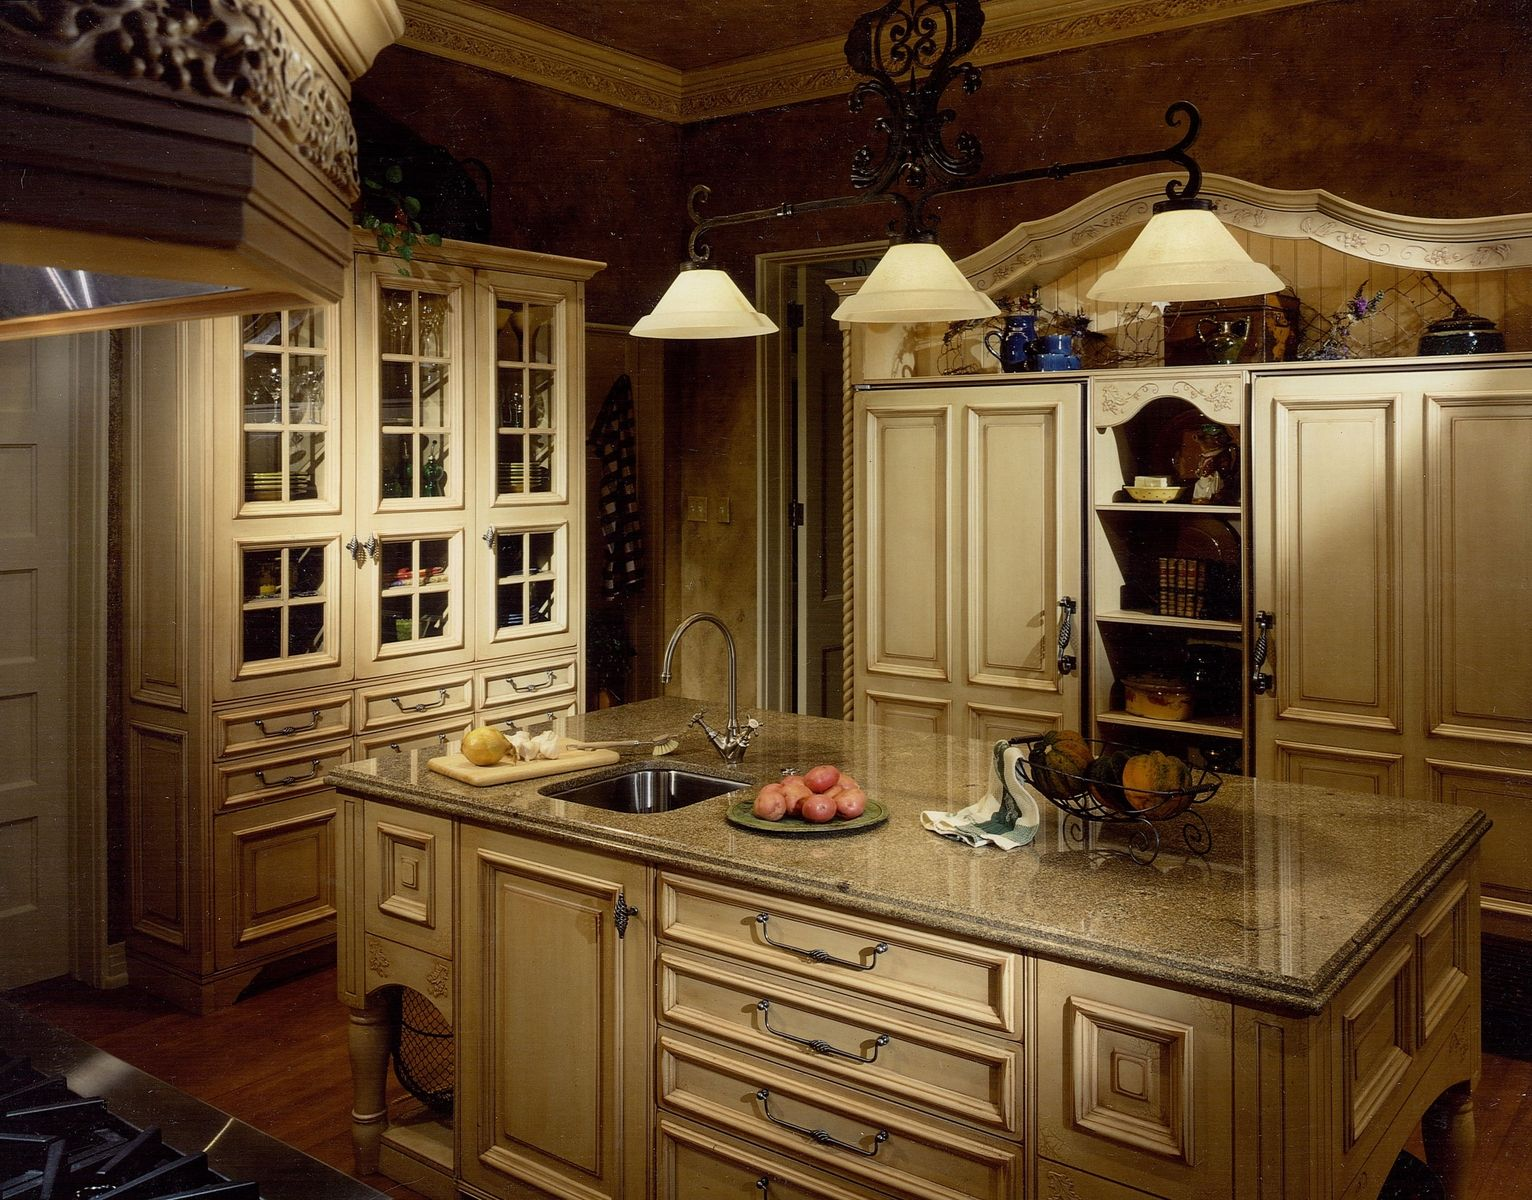 handmade furniturizing a french country kitchen remodel by cabinets